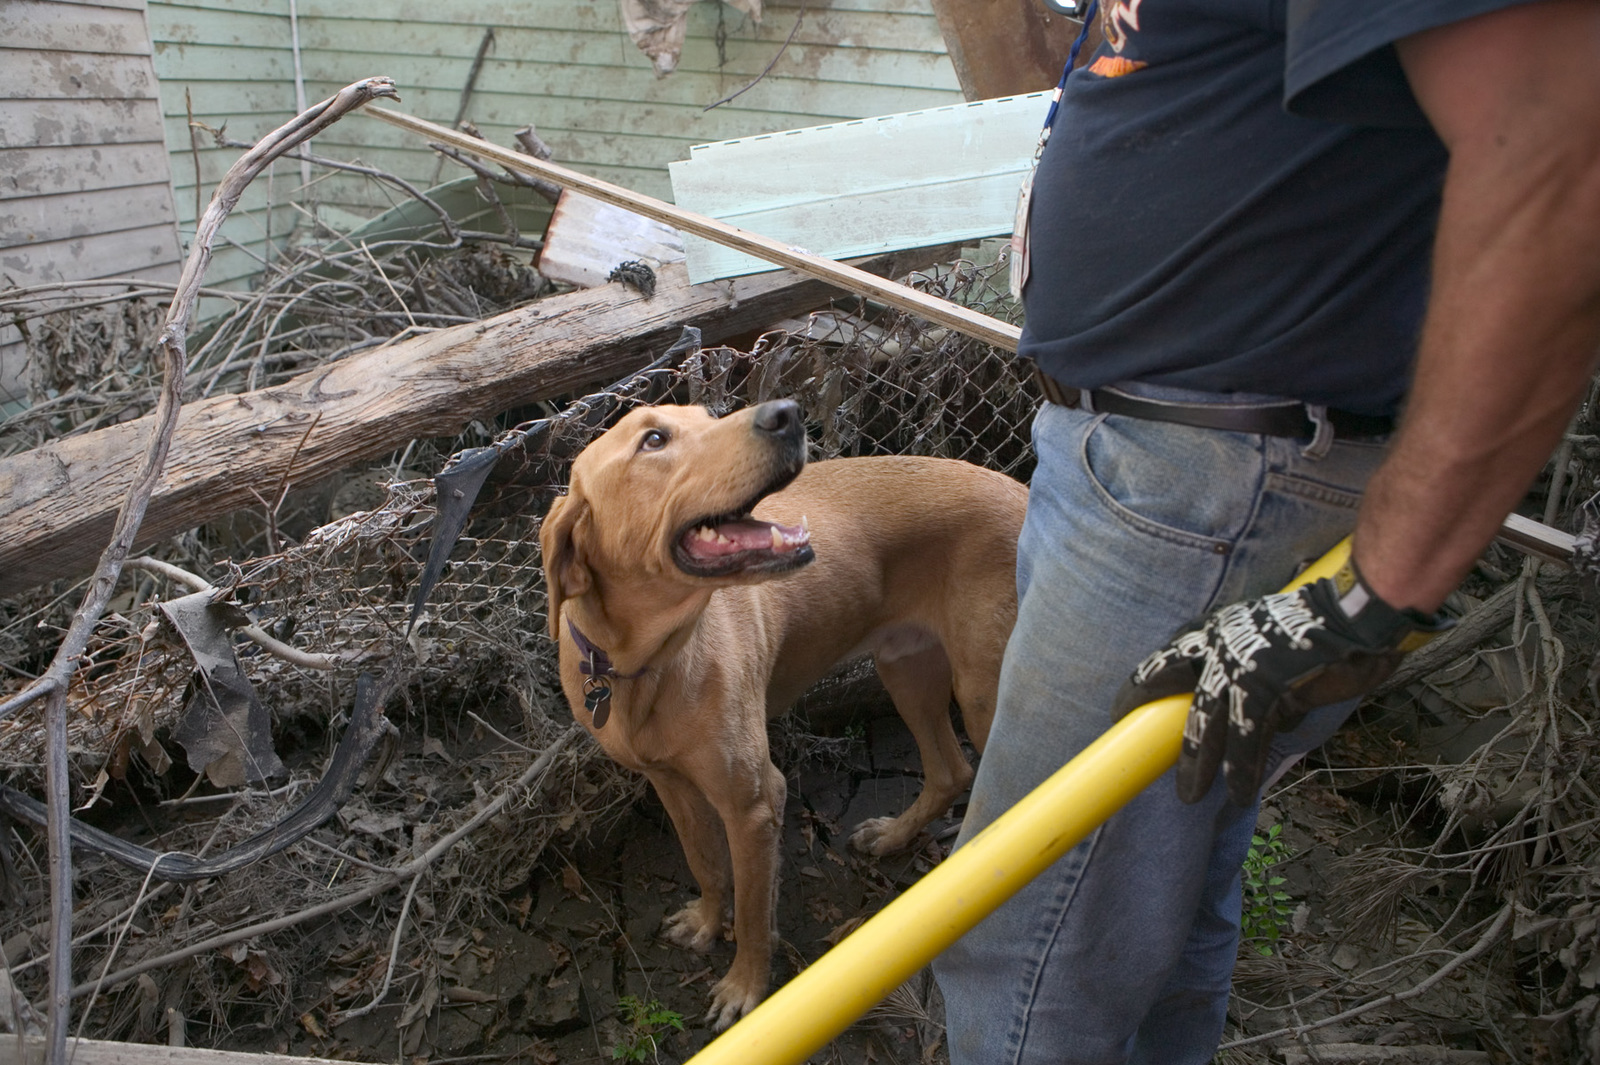 [Hurricane Katrina] New Orleans, LA., 10/15/2005 -- New Orleans Firefighter, Autrey Plaisance, and yellow labrador retriever, Finn, take a break from searching homes for missing people in the Lower 9th Ward following devastating Hurricane Katrina.  FEMA photo/Andrea Booher